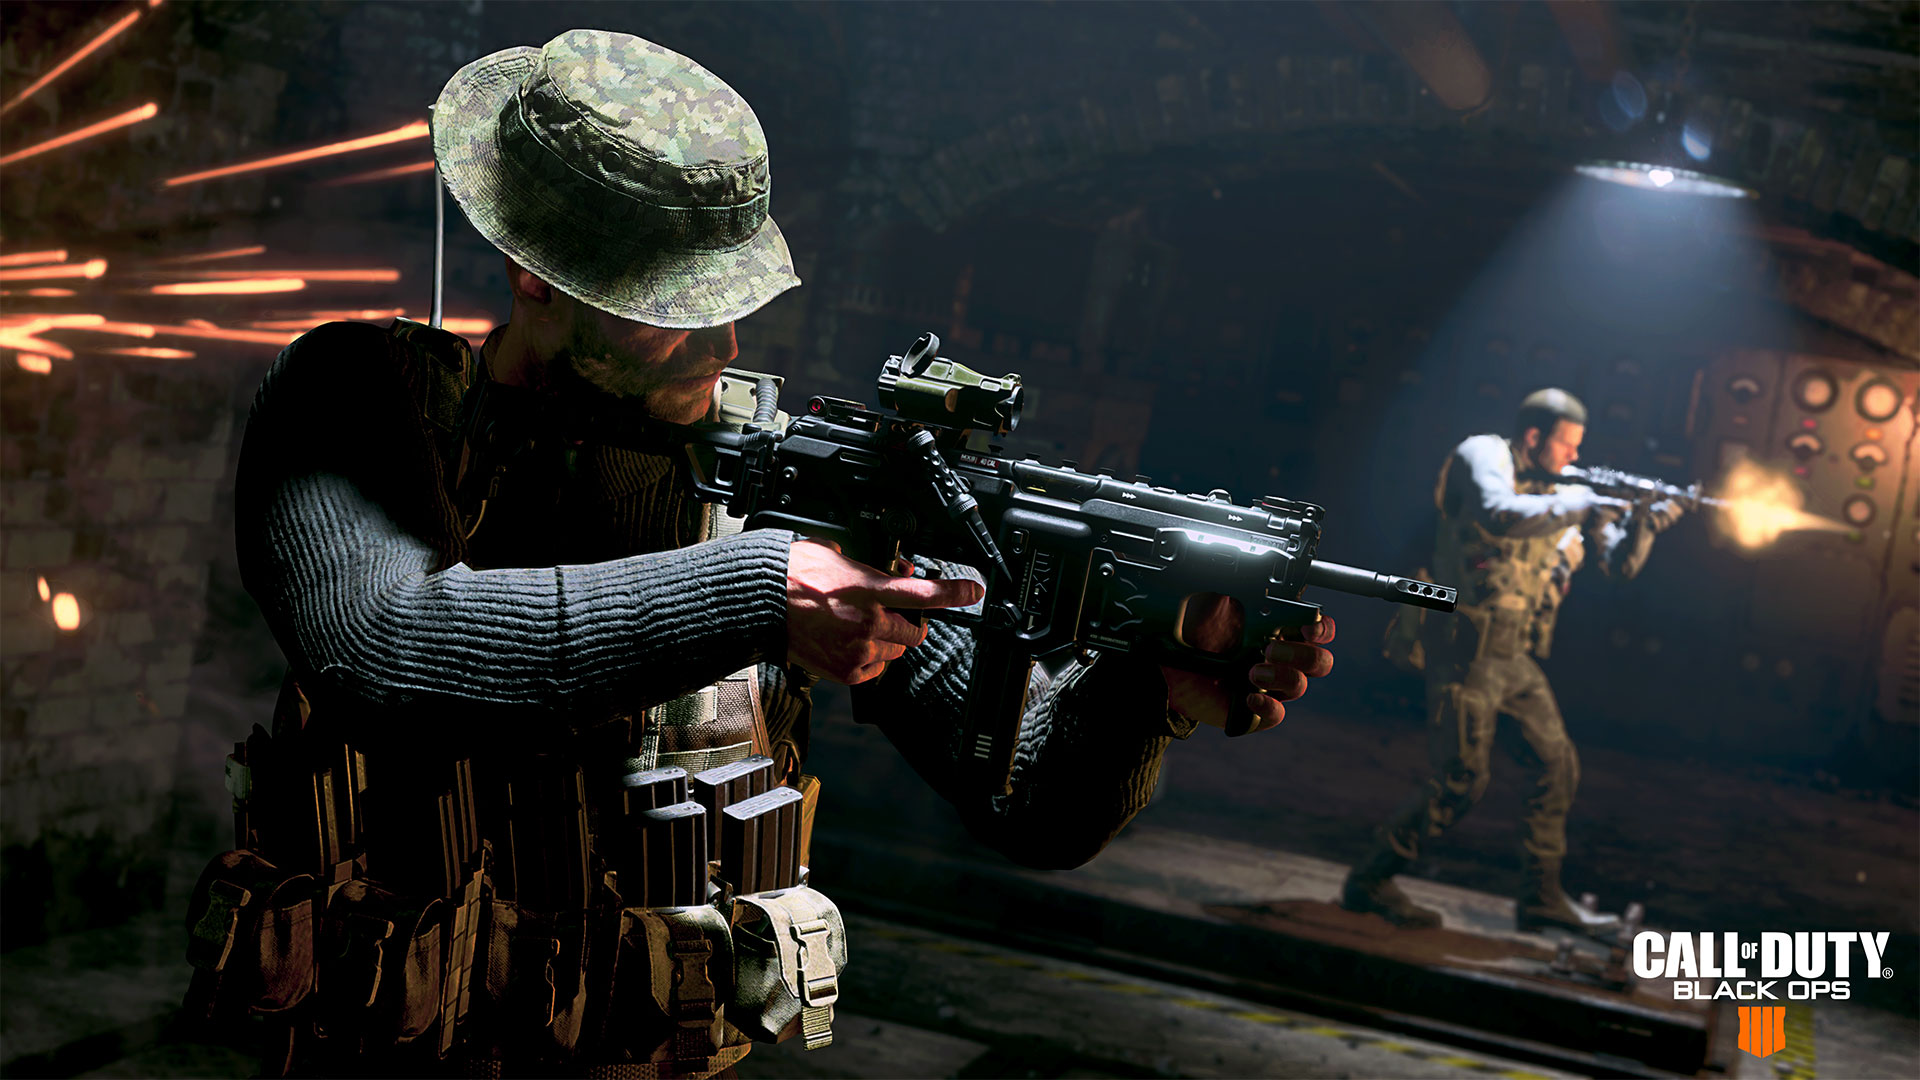 Classic Captain Price: Reporting for Duty in Call of Duty